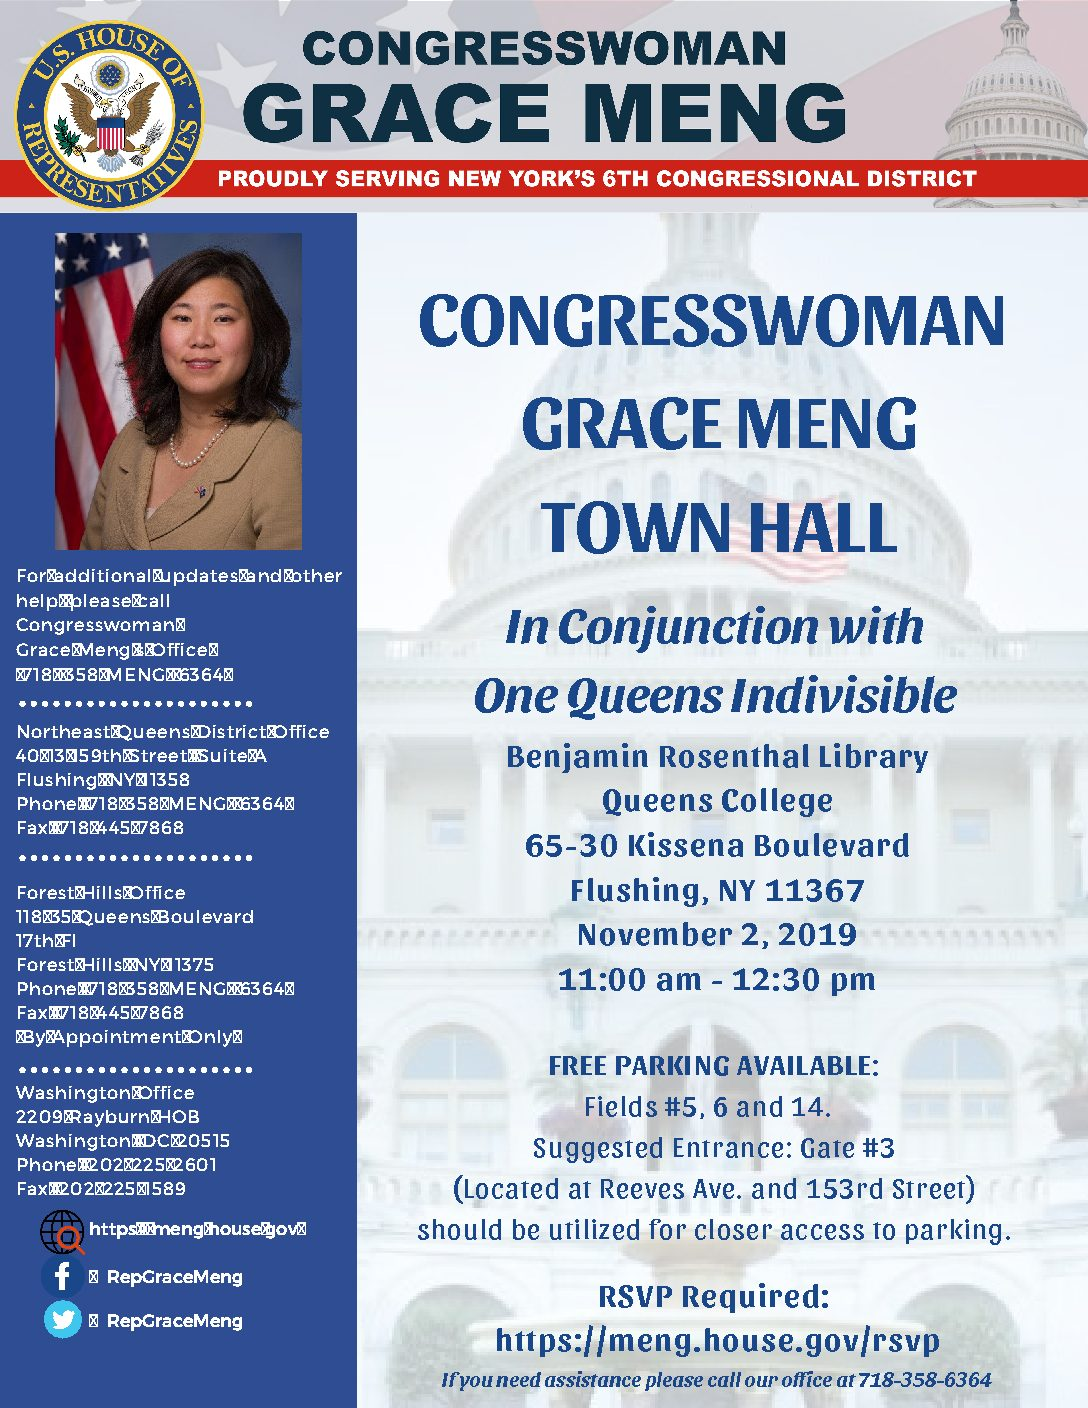 U.S. REP. MENG TO HOLD TOWN HALL ON NOVEMBER 2ND